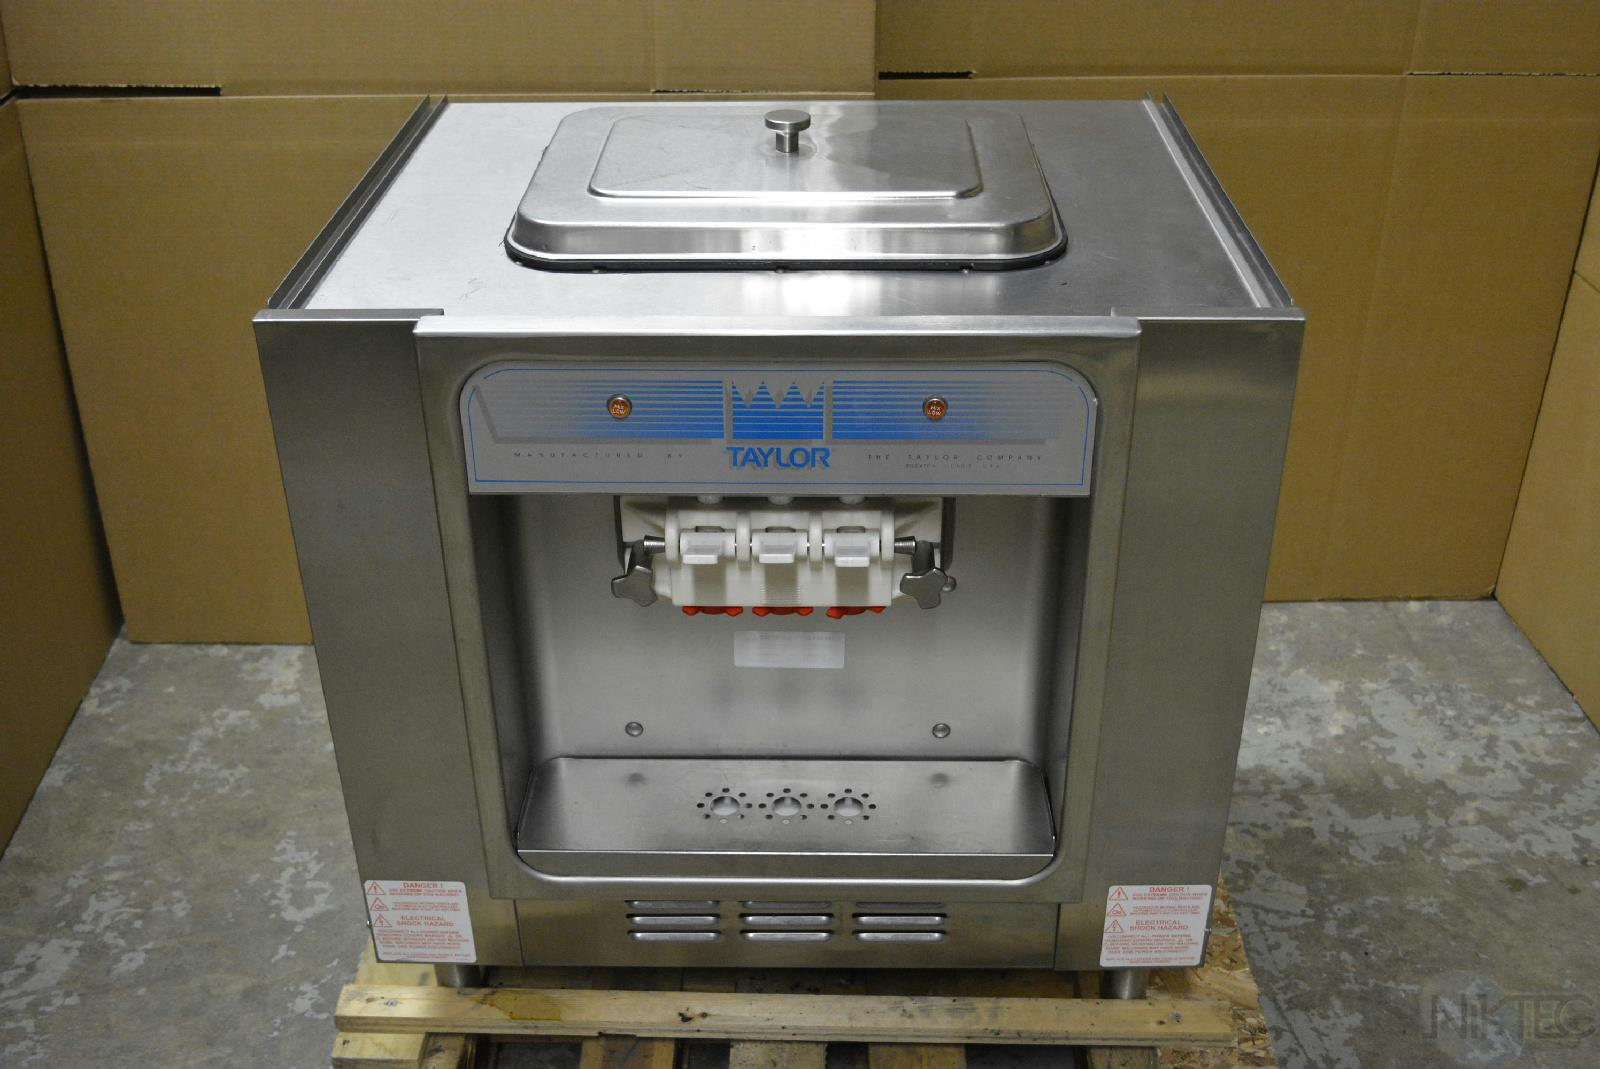 Counter Top Ice Cream Machine For Sale : Details about TAYLOR 162-27 Counter Top Soft Serve Ice Cream Machine